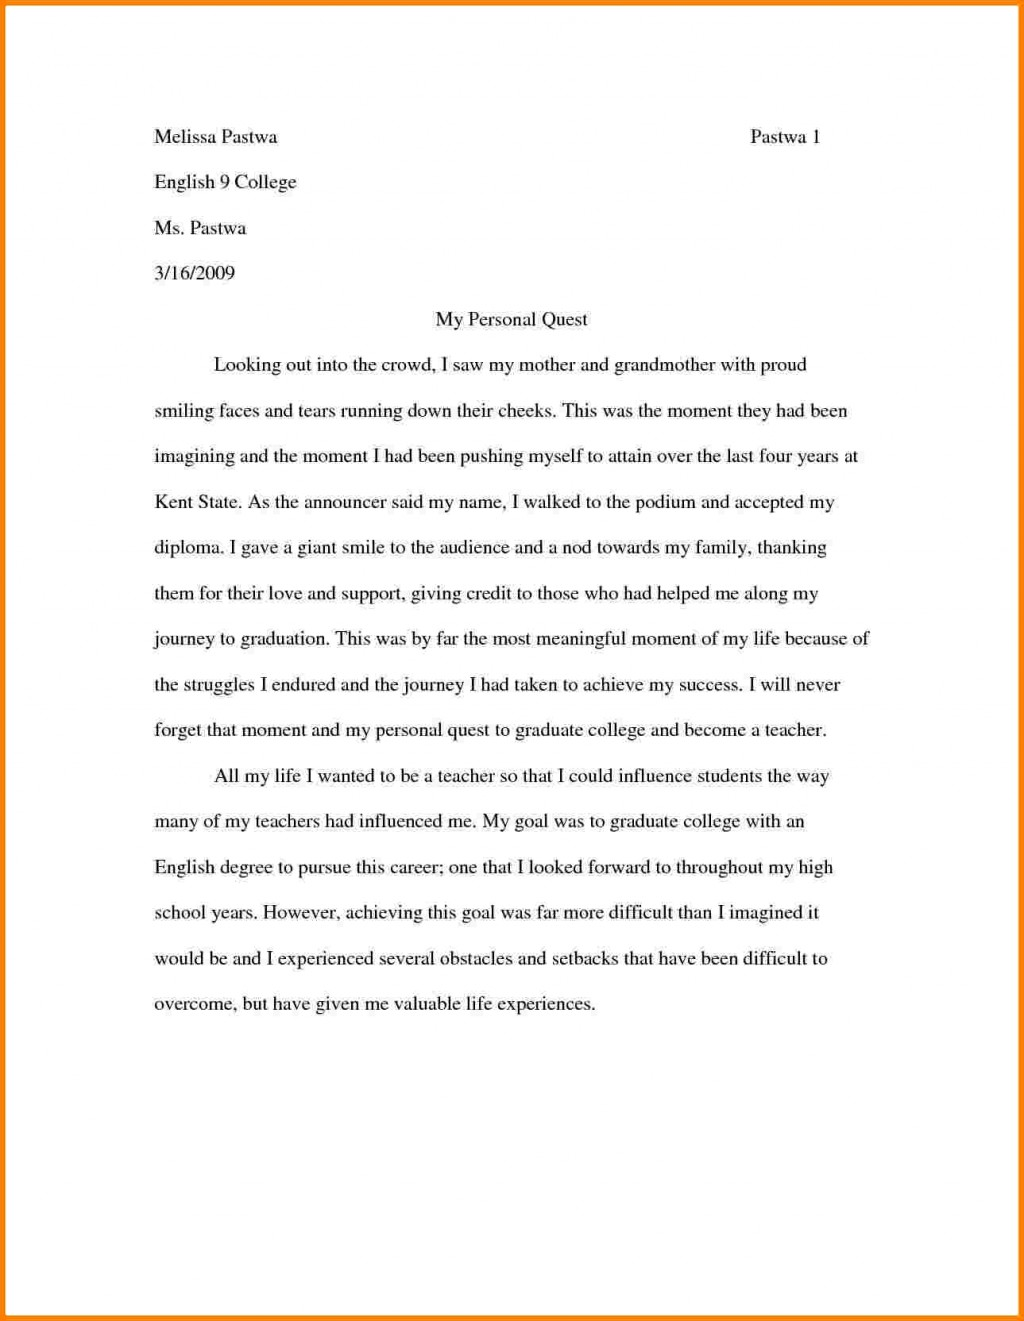 012 3341381556 How To Write Proposal20nt Essay Topics Buy Researchs Cheap Examples20 Remarkable Research Paper Large